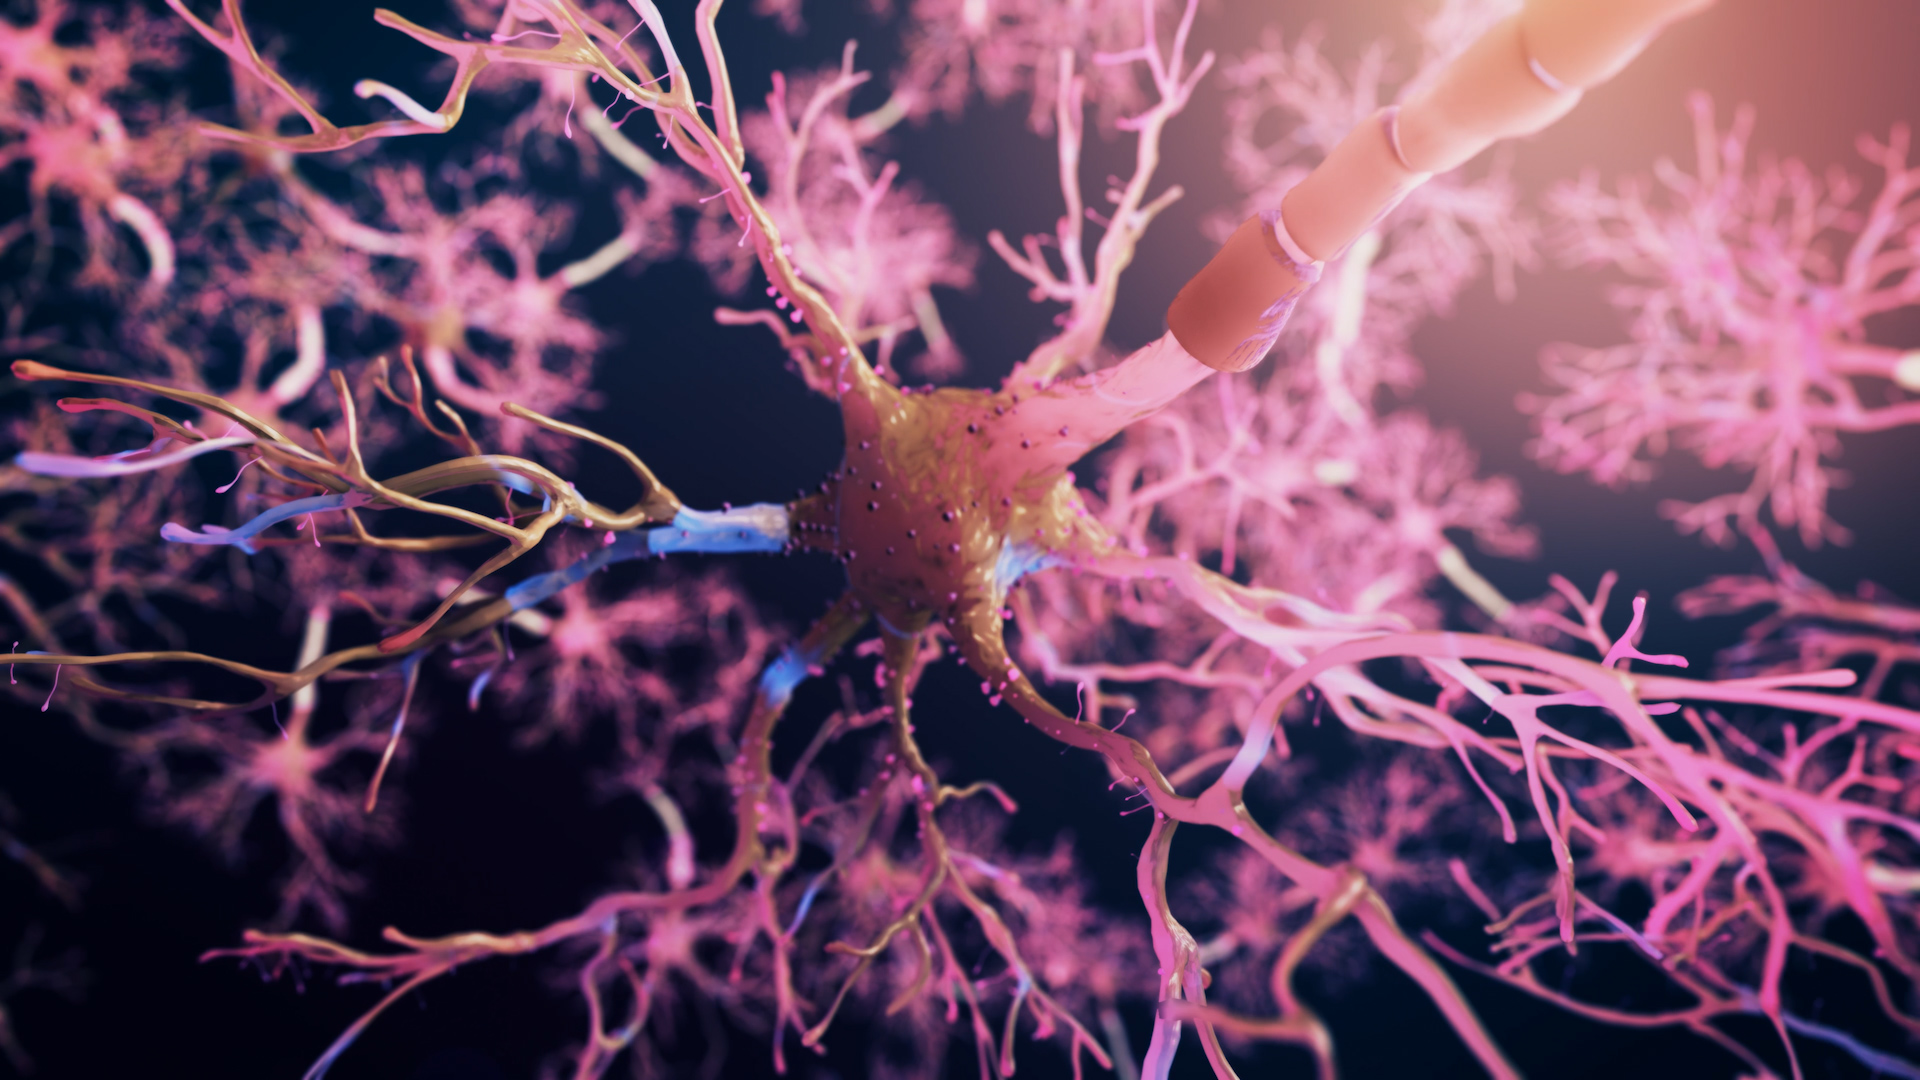 Medical Wallpaper Hd Real Neuron Synapse Network 3d Animation Flight Through